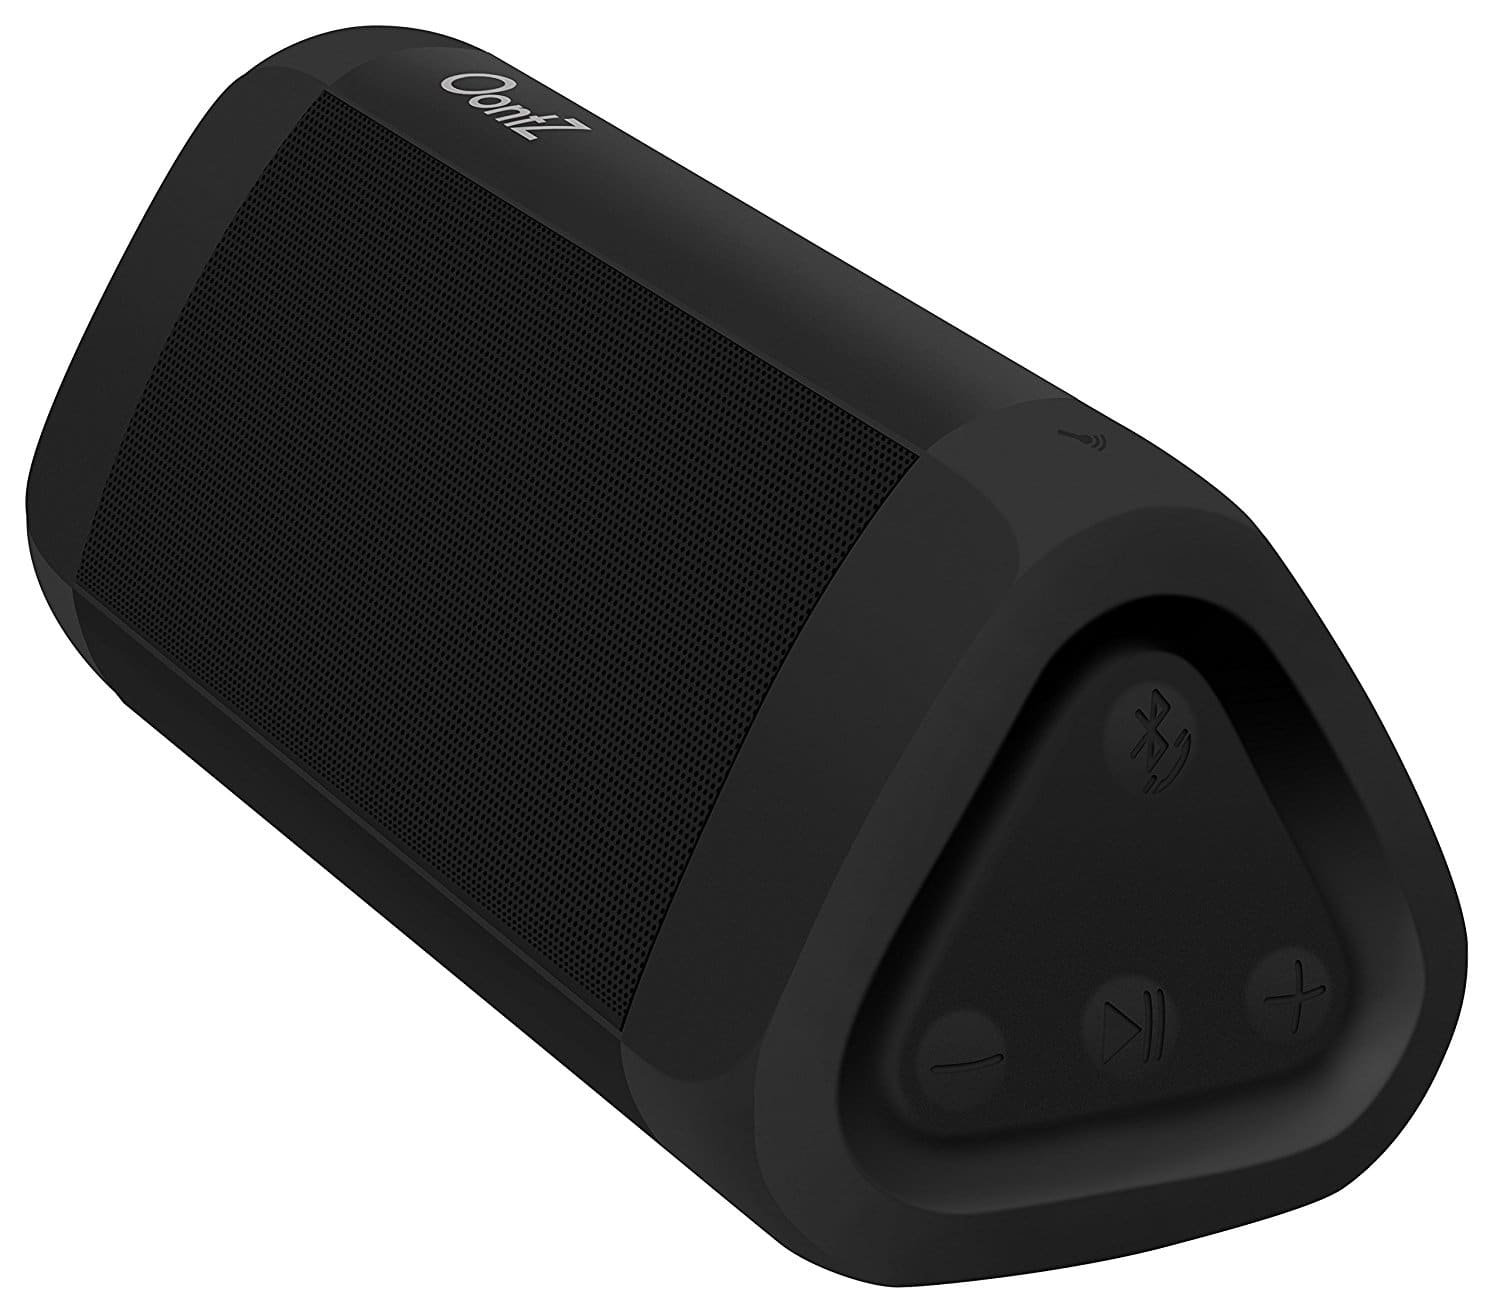 Cambridge SoundWorks OontZ Angle 3 PLUS Bluetooth Speaker $23.99